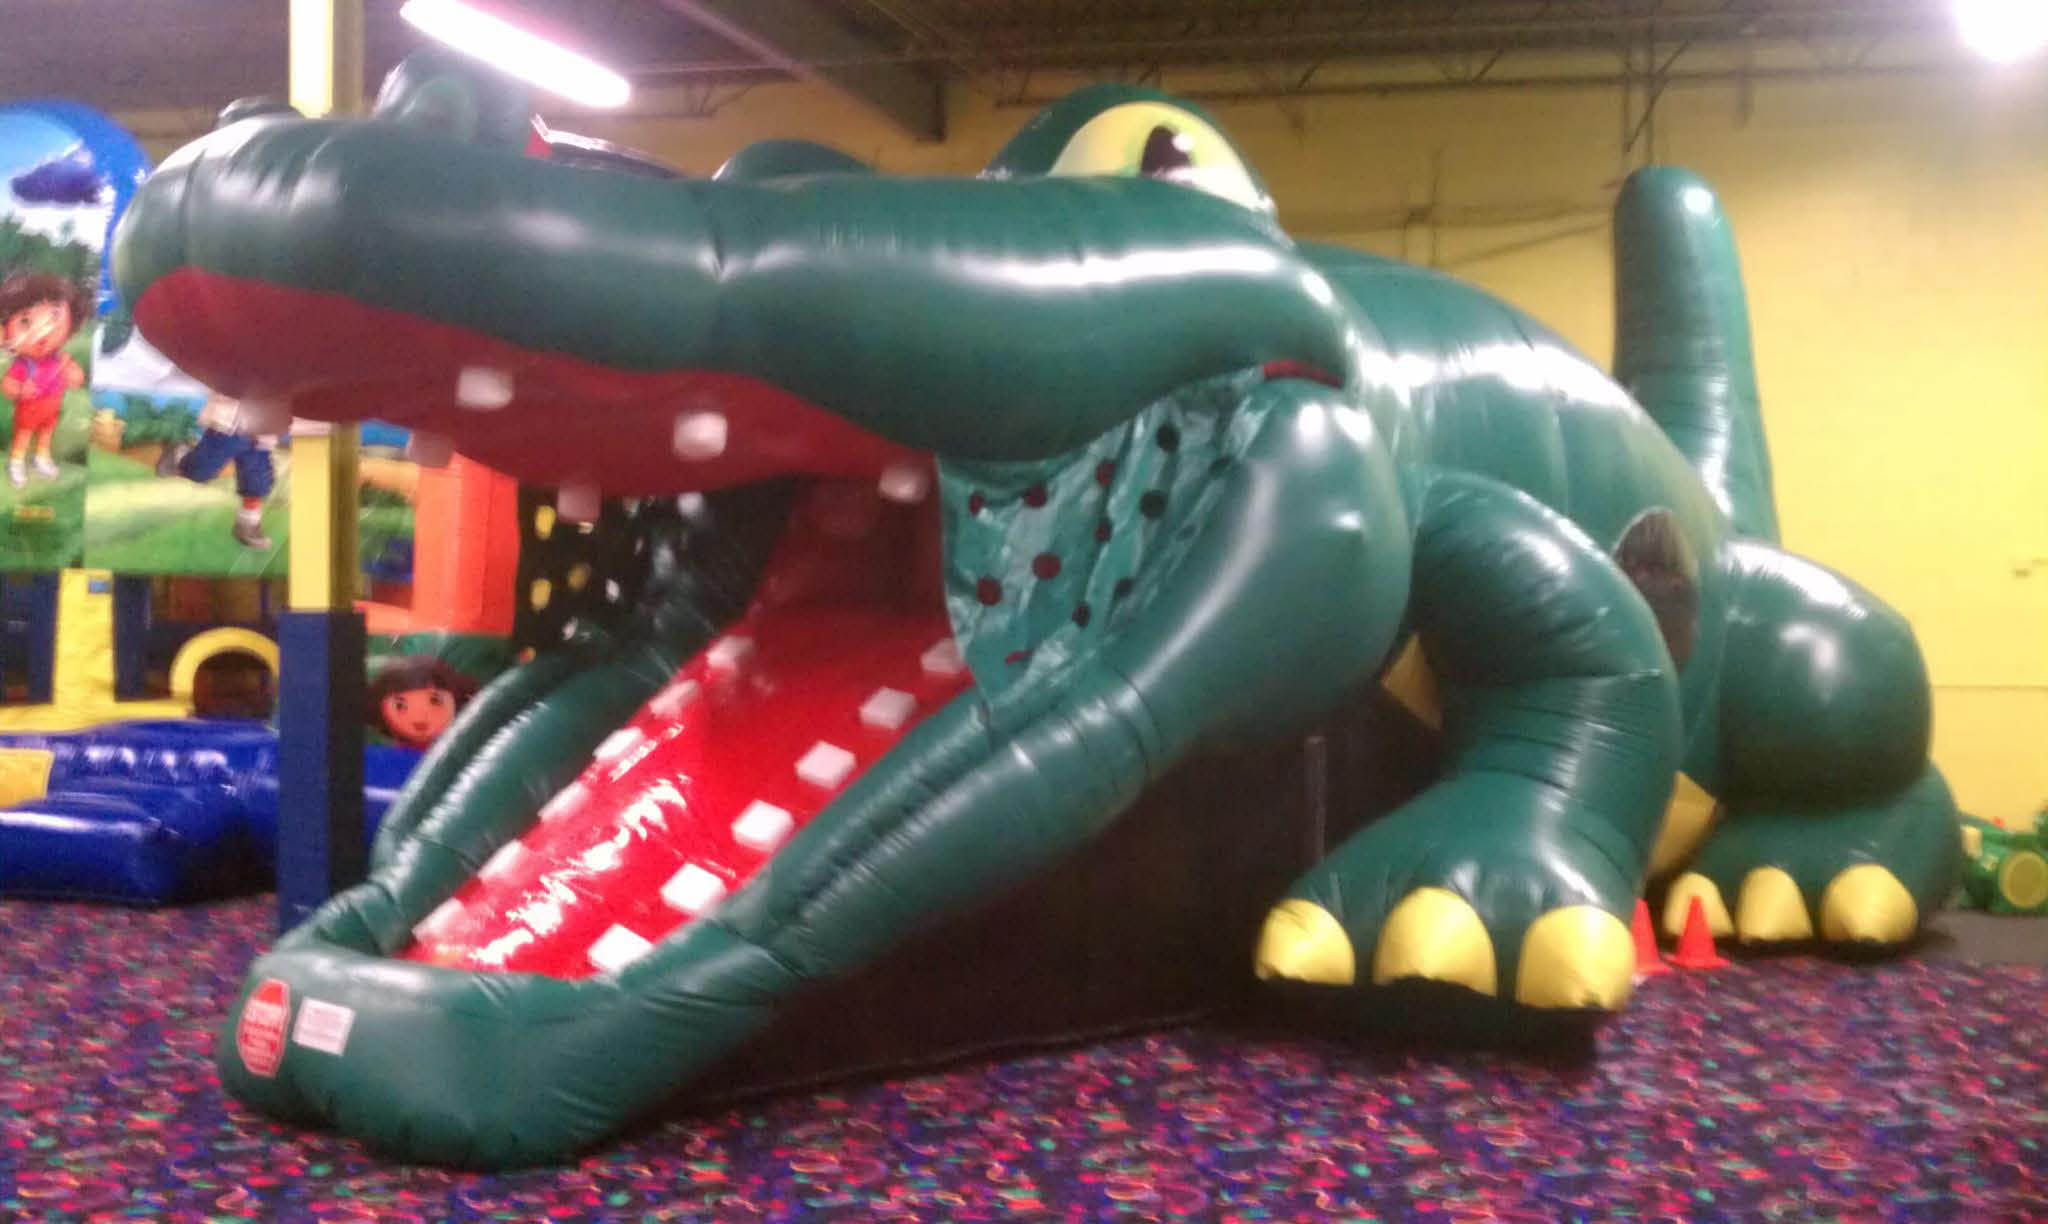 Alligator jump and play in Chicago Ridge, IL.